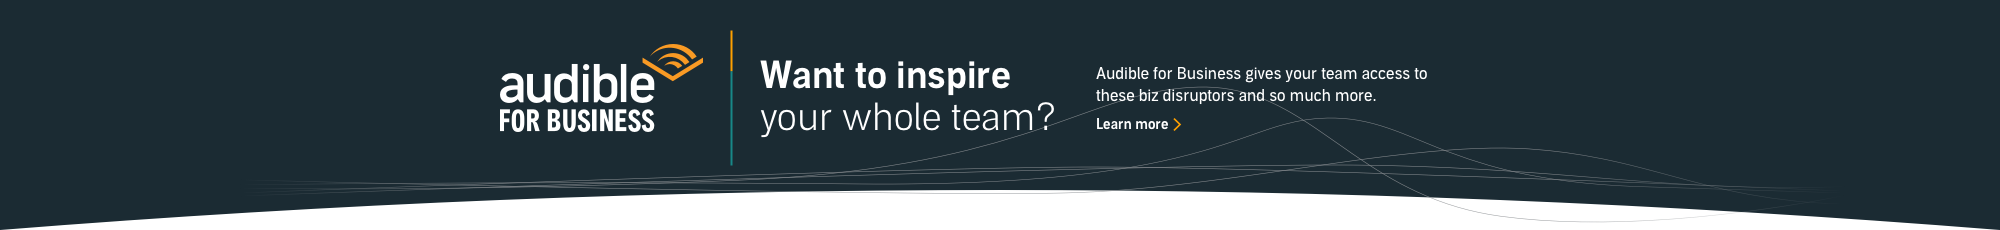 Inspire Your Whole Team with Audible for Business